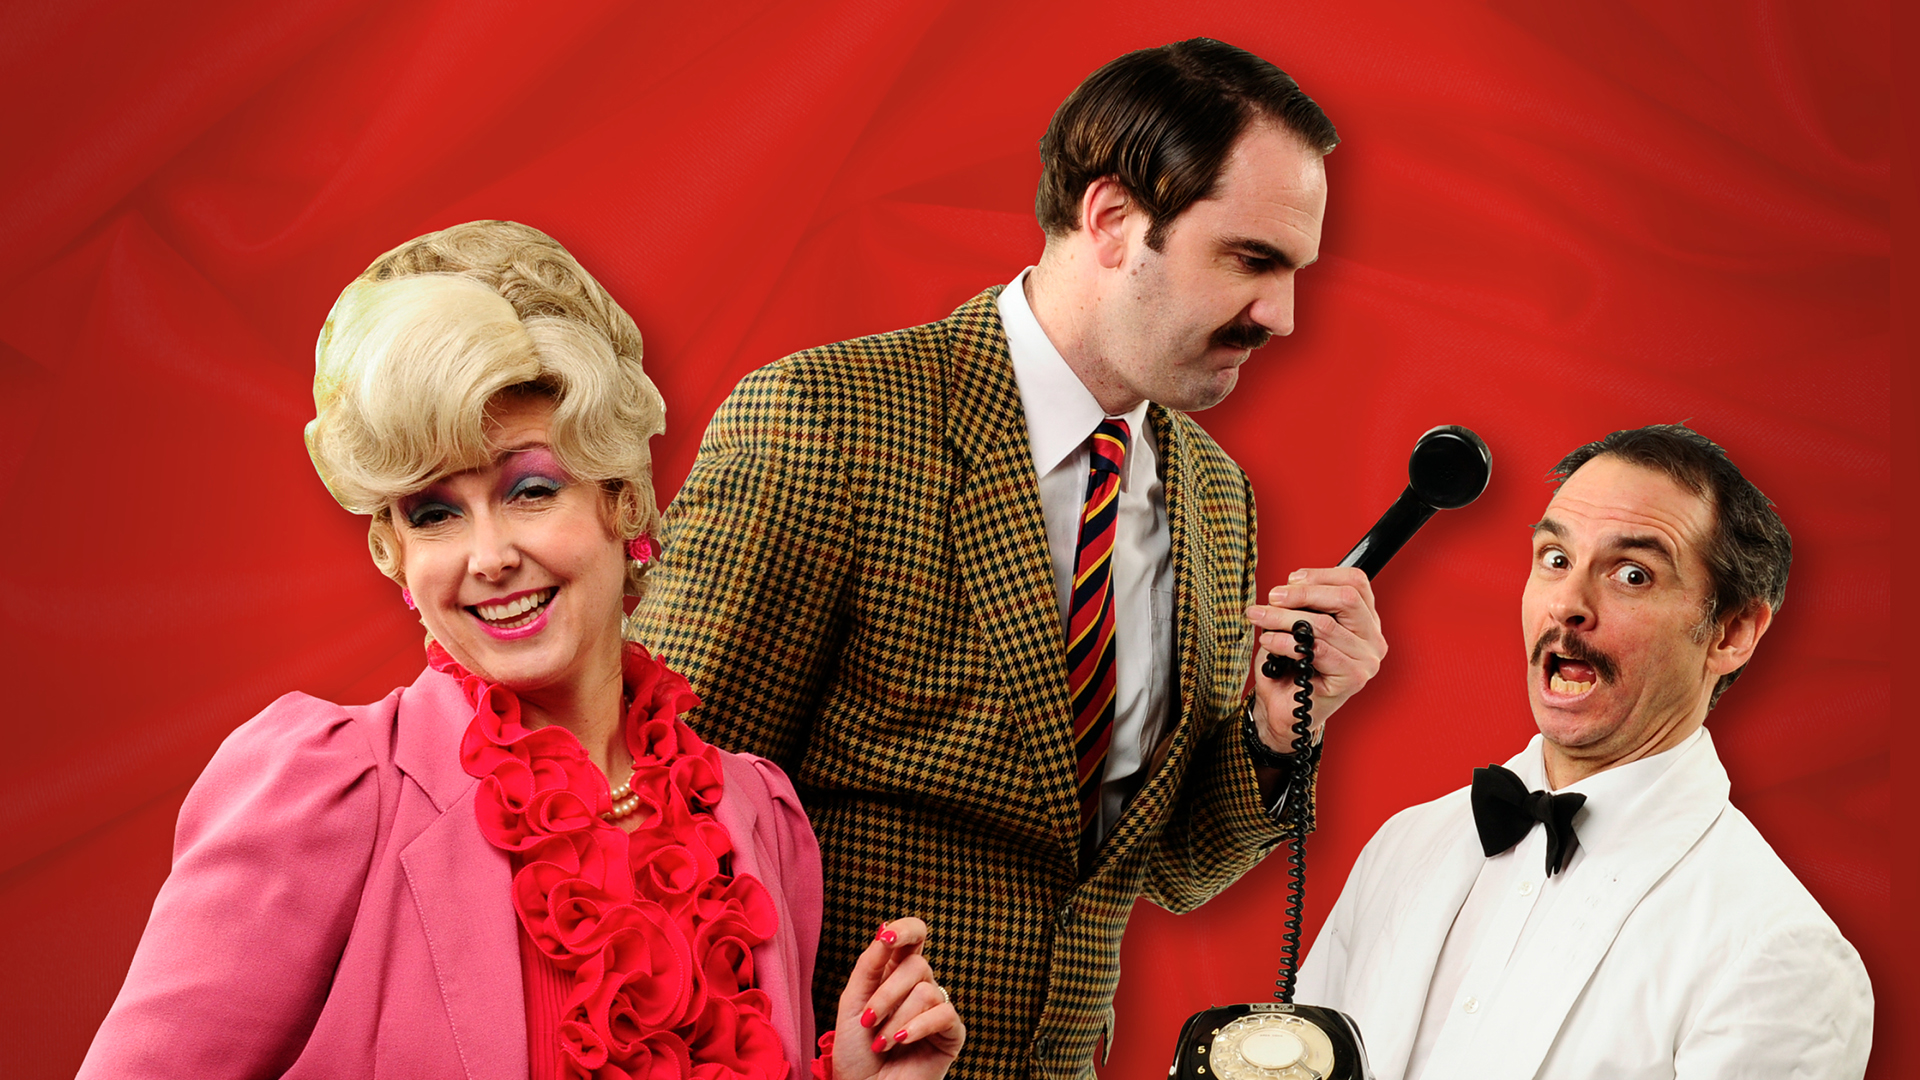 FAULTY TOWERS DINING EXPERIENCE   Ok, so this is a slightly tenuous link to Mother's Day but if you fancied something a little different from flowers and a card then the  Faulty Towers Dining Experience  could be perfect for your mother and you...if she's game for a comedy evening of food and calamity that is. Inspired by one of Britain's greatest comedy series (which, can you believe it, only made 12 episodes in total?!) the Faulty Towers Dining Experience is a 2-hour interactive production which features you, the diners, as the audience. As you tuck into your three-course meal (lunch and dinner slots both available) you will be caught up in the madness of the three performers who replicate the spirit of the completely incompetent hotel staff that made the show so popular. Now we must alert you to the fact that this is in no way associated with the TV programme but rather is a dedication to it's humour and disastrous hilarity. The madness takes place at the De Vere Connaught Rooms in Holborn and tickets can be bought  here .